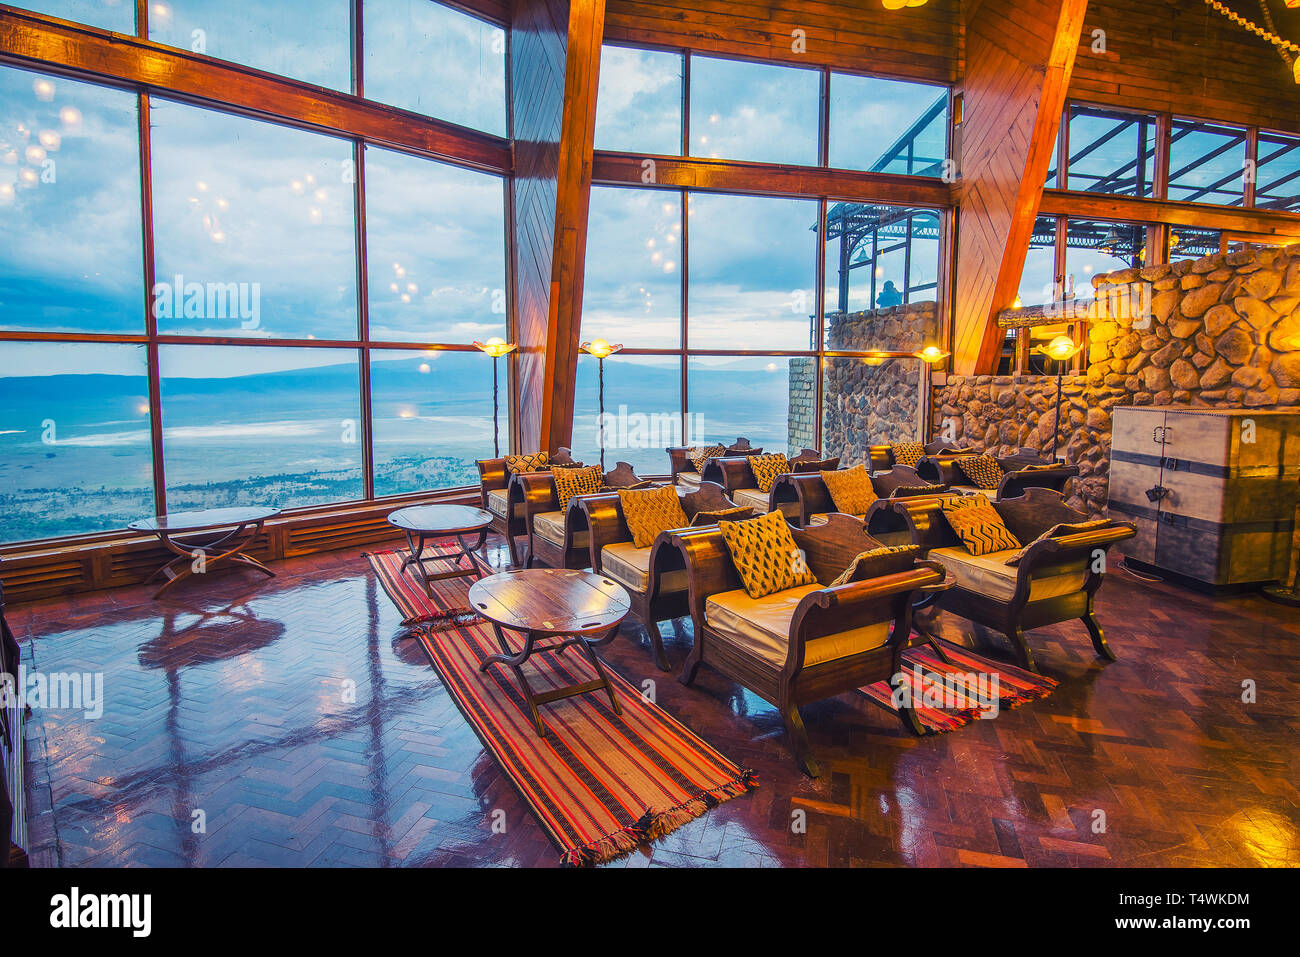 Interior of the Ngorongoro Wildlife Lodge with a glass wall overlooking the park - Stock Image